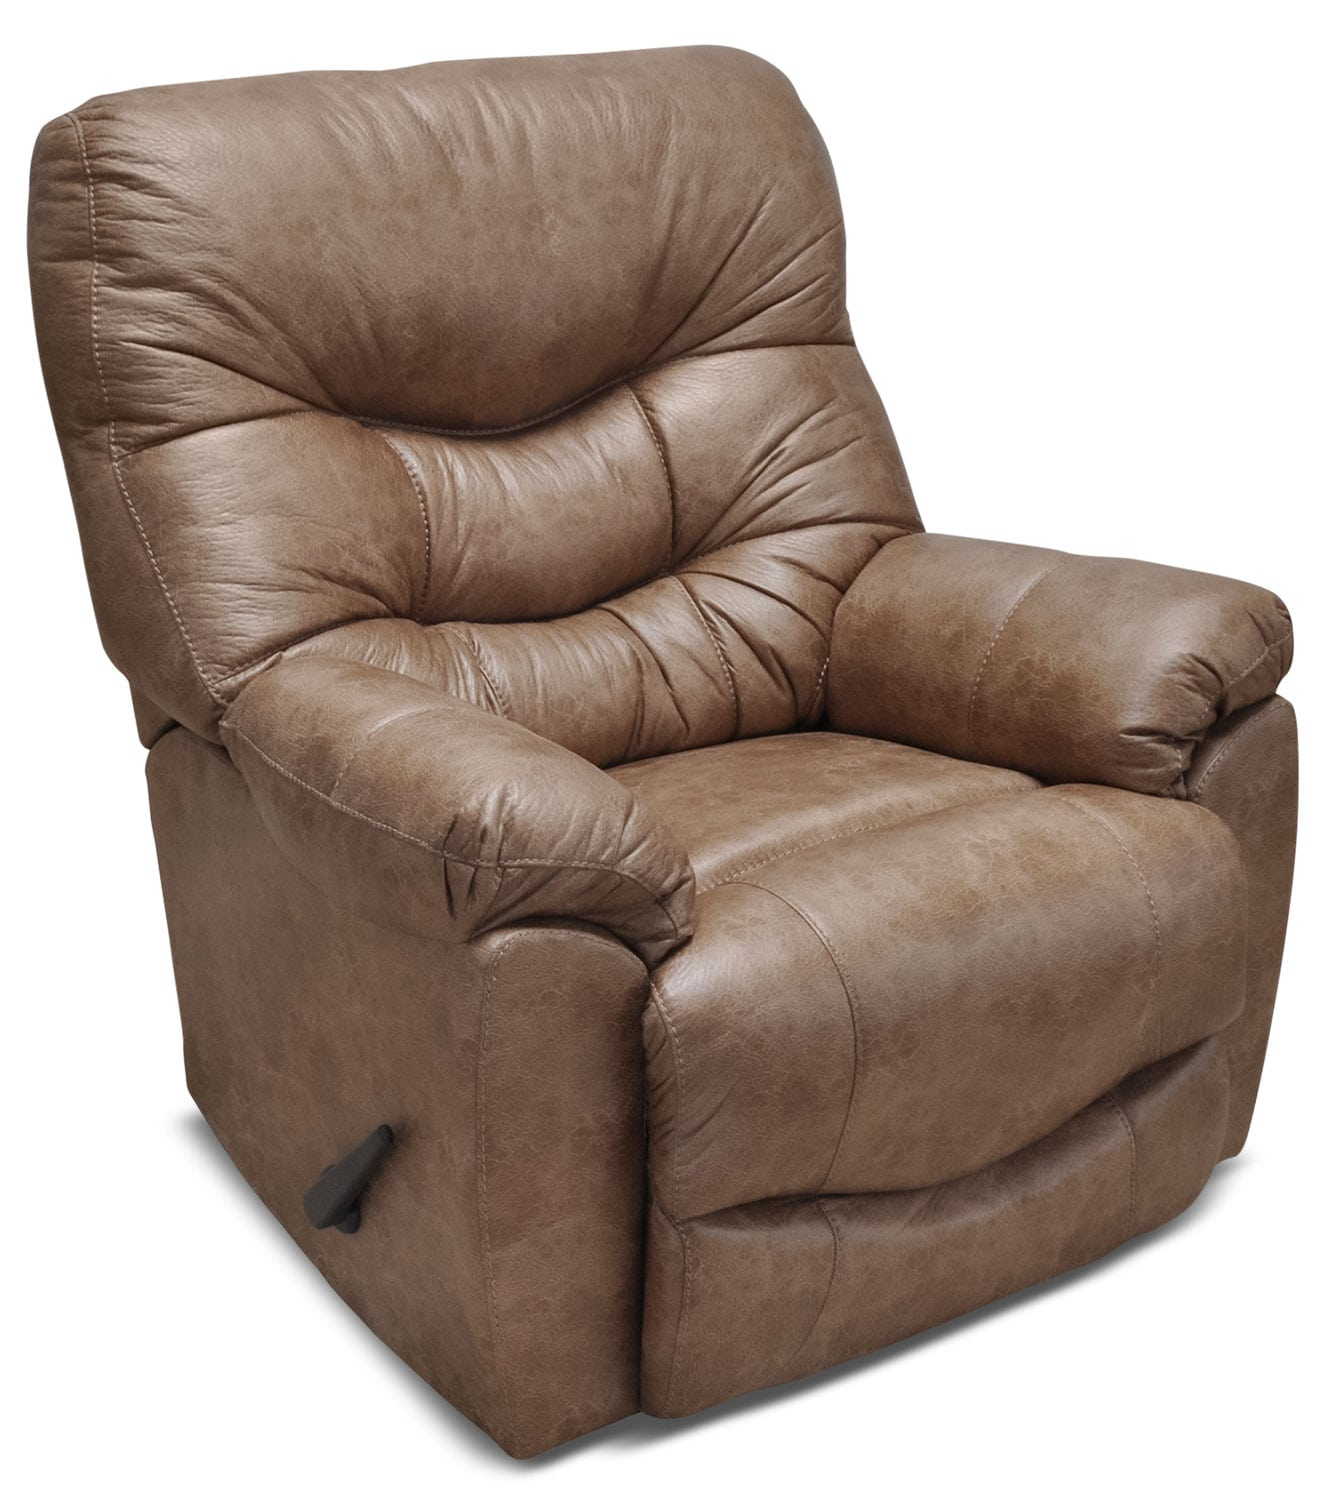 4595 Leather-Look Fabric Rocker Reclining Chair – Camel